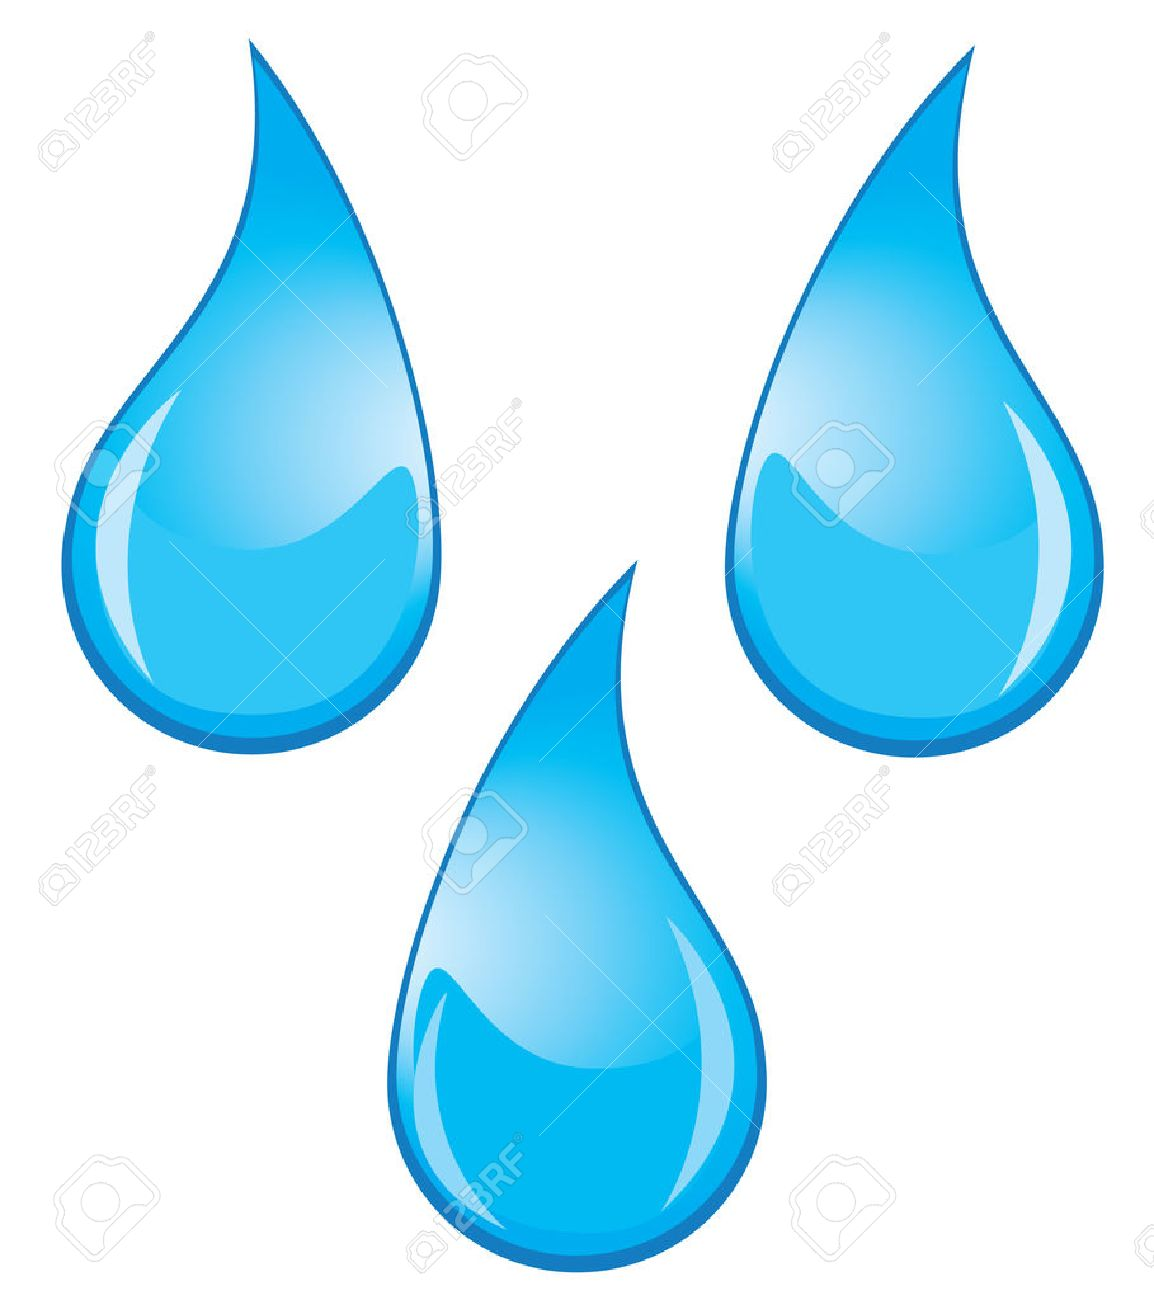 1154x1300 Water Droplets Clipart Free Download Clip Art